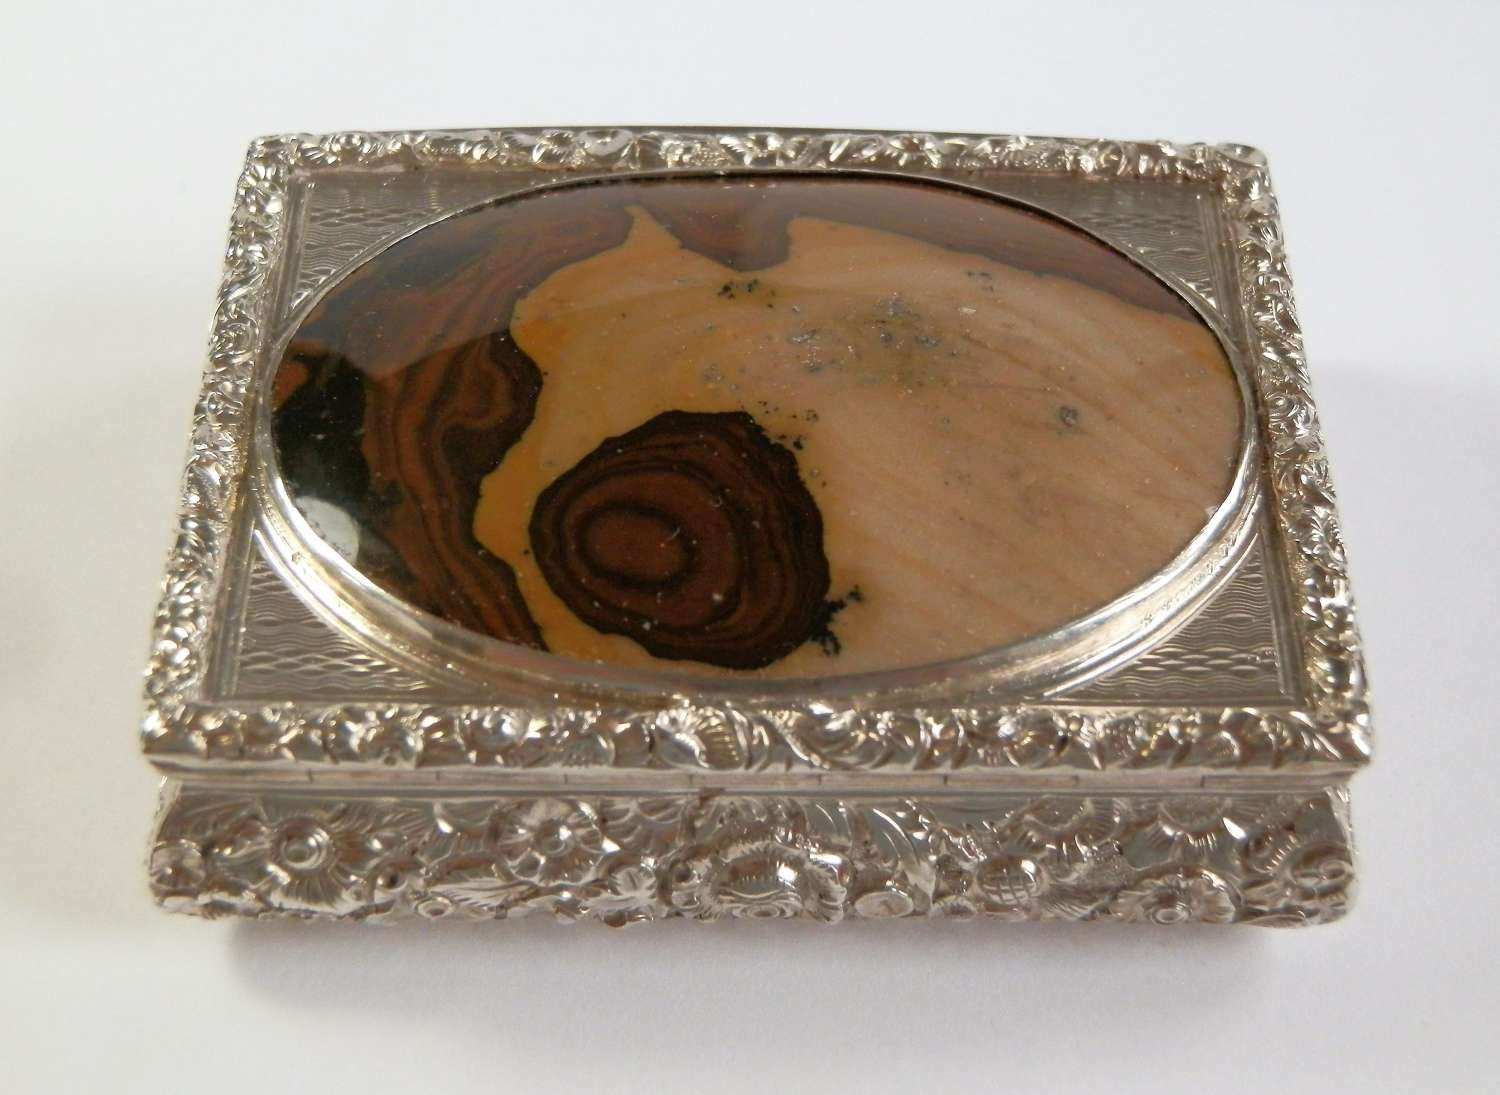 George IV silver and agate snuff box, Birmingham 1827